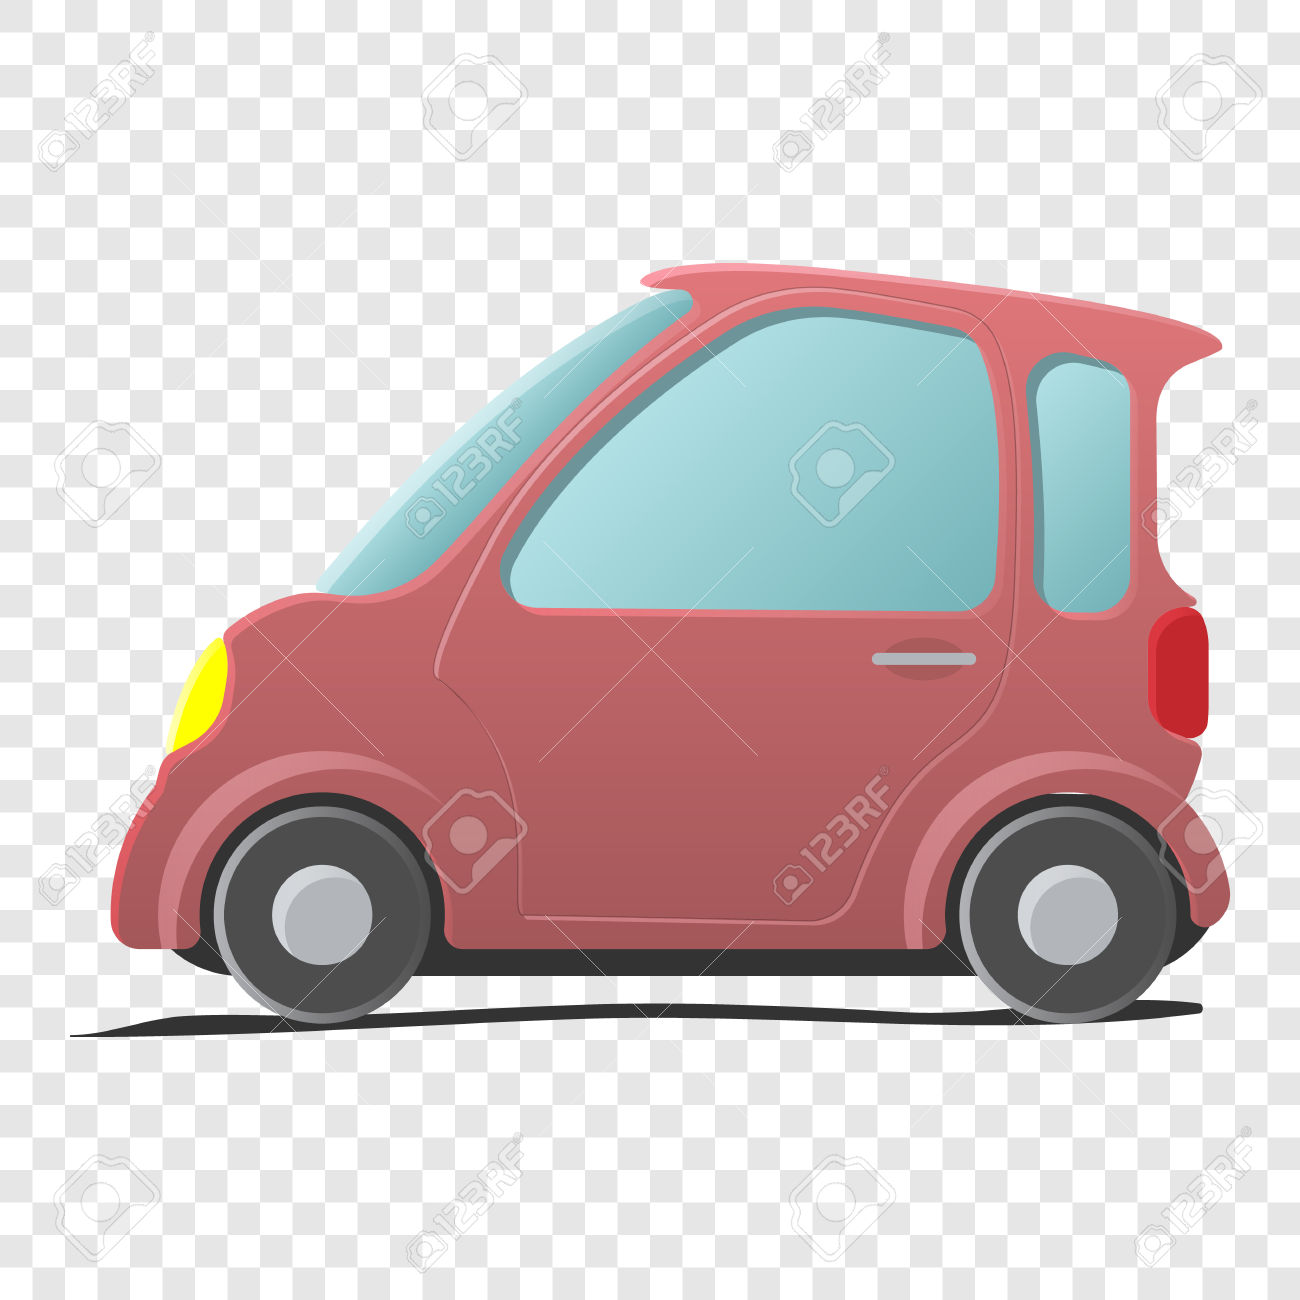 Cars clipart clear background.  amazing car transparent